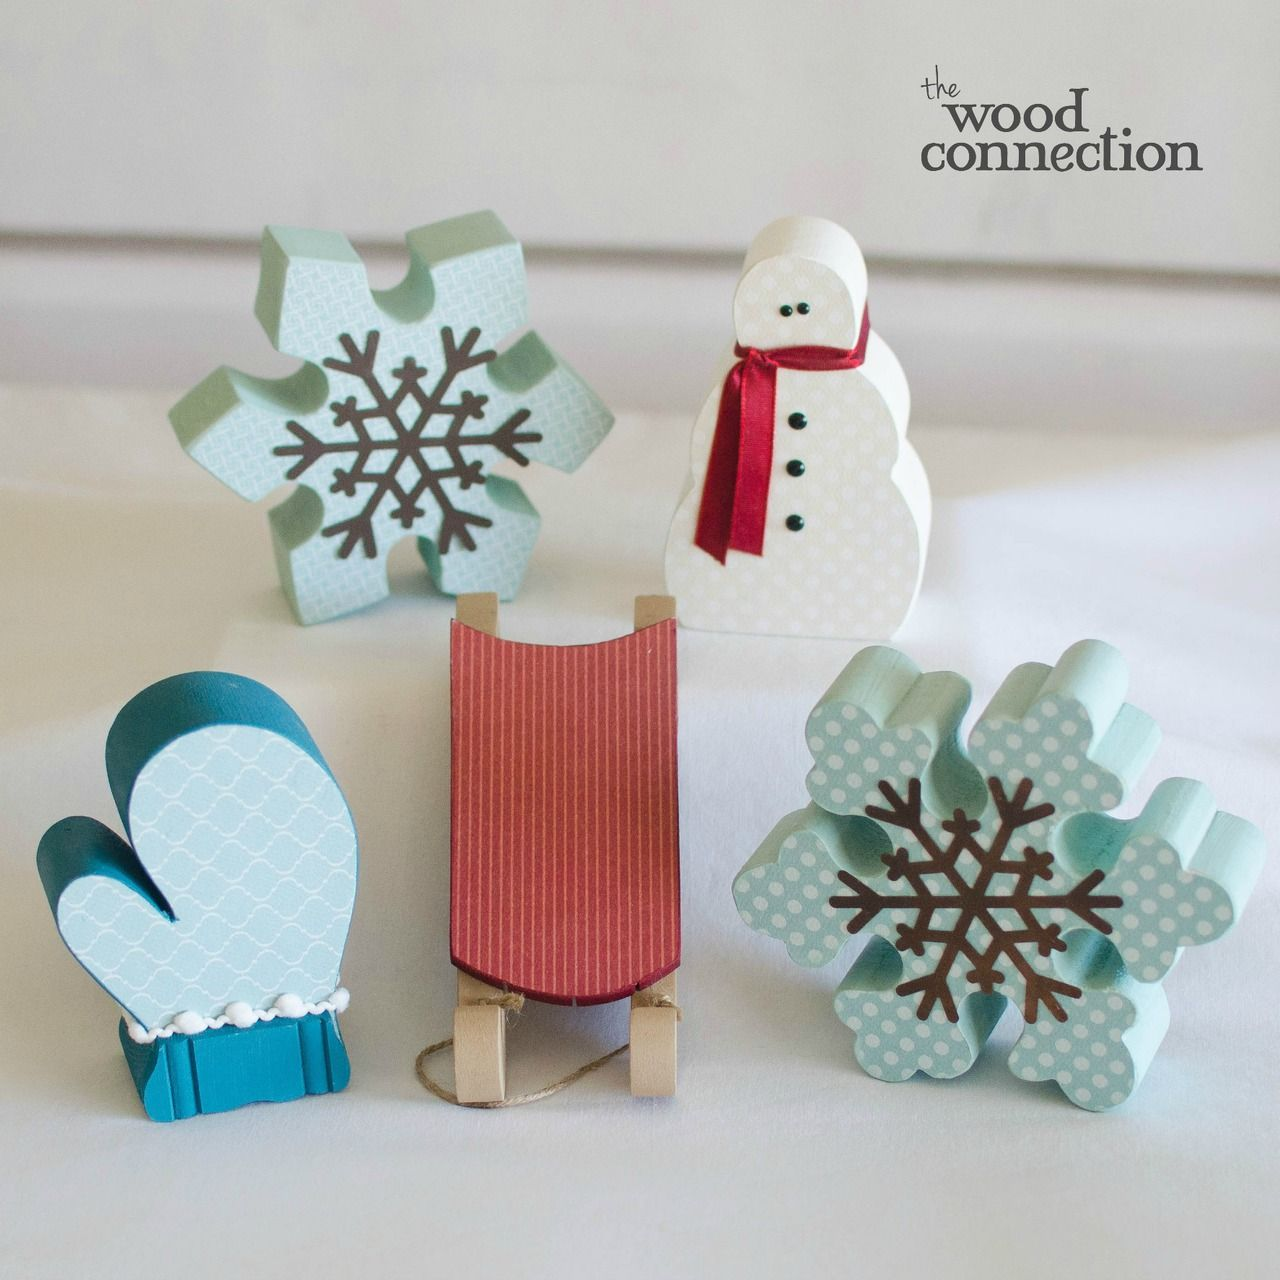 45+ Wooden cubes craft for sale ideas in 2021